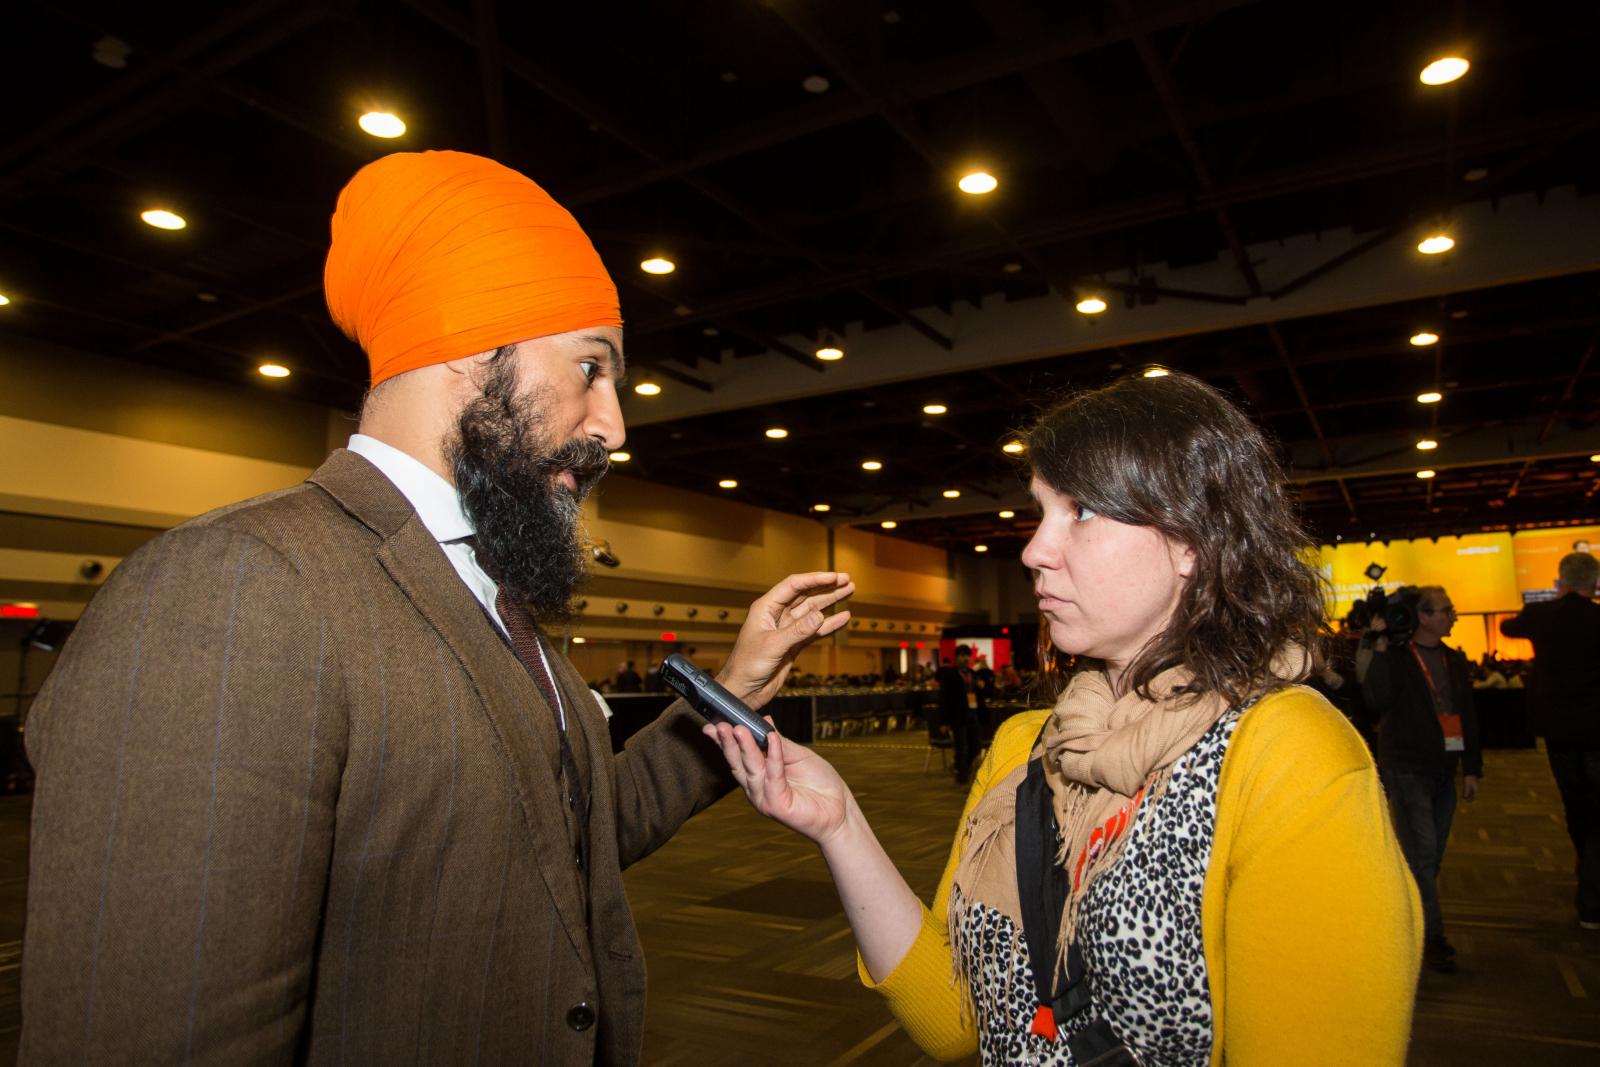 Trish Audette-Longo interviews Jagmeet Singh in Ottawa on Feb. 18, 2018. Photo by Alex Tétreault